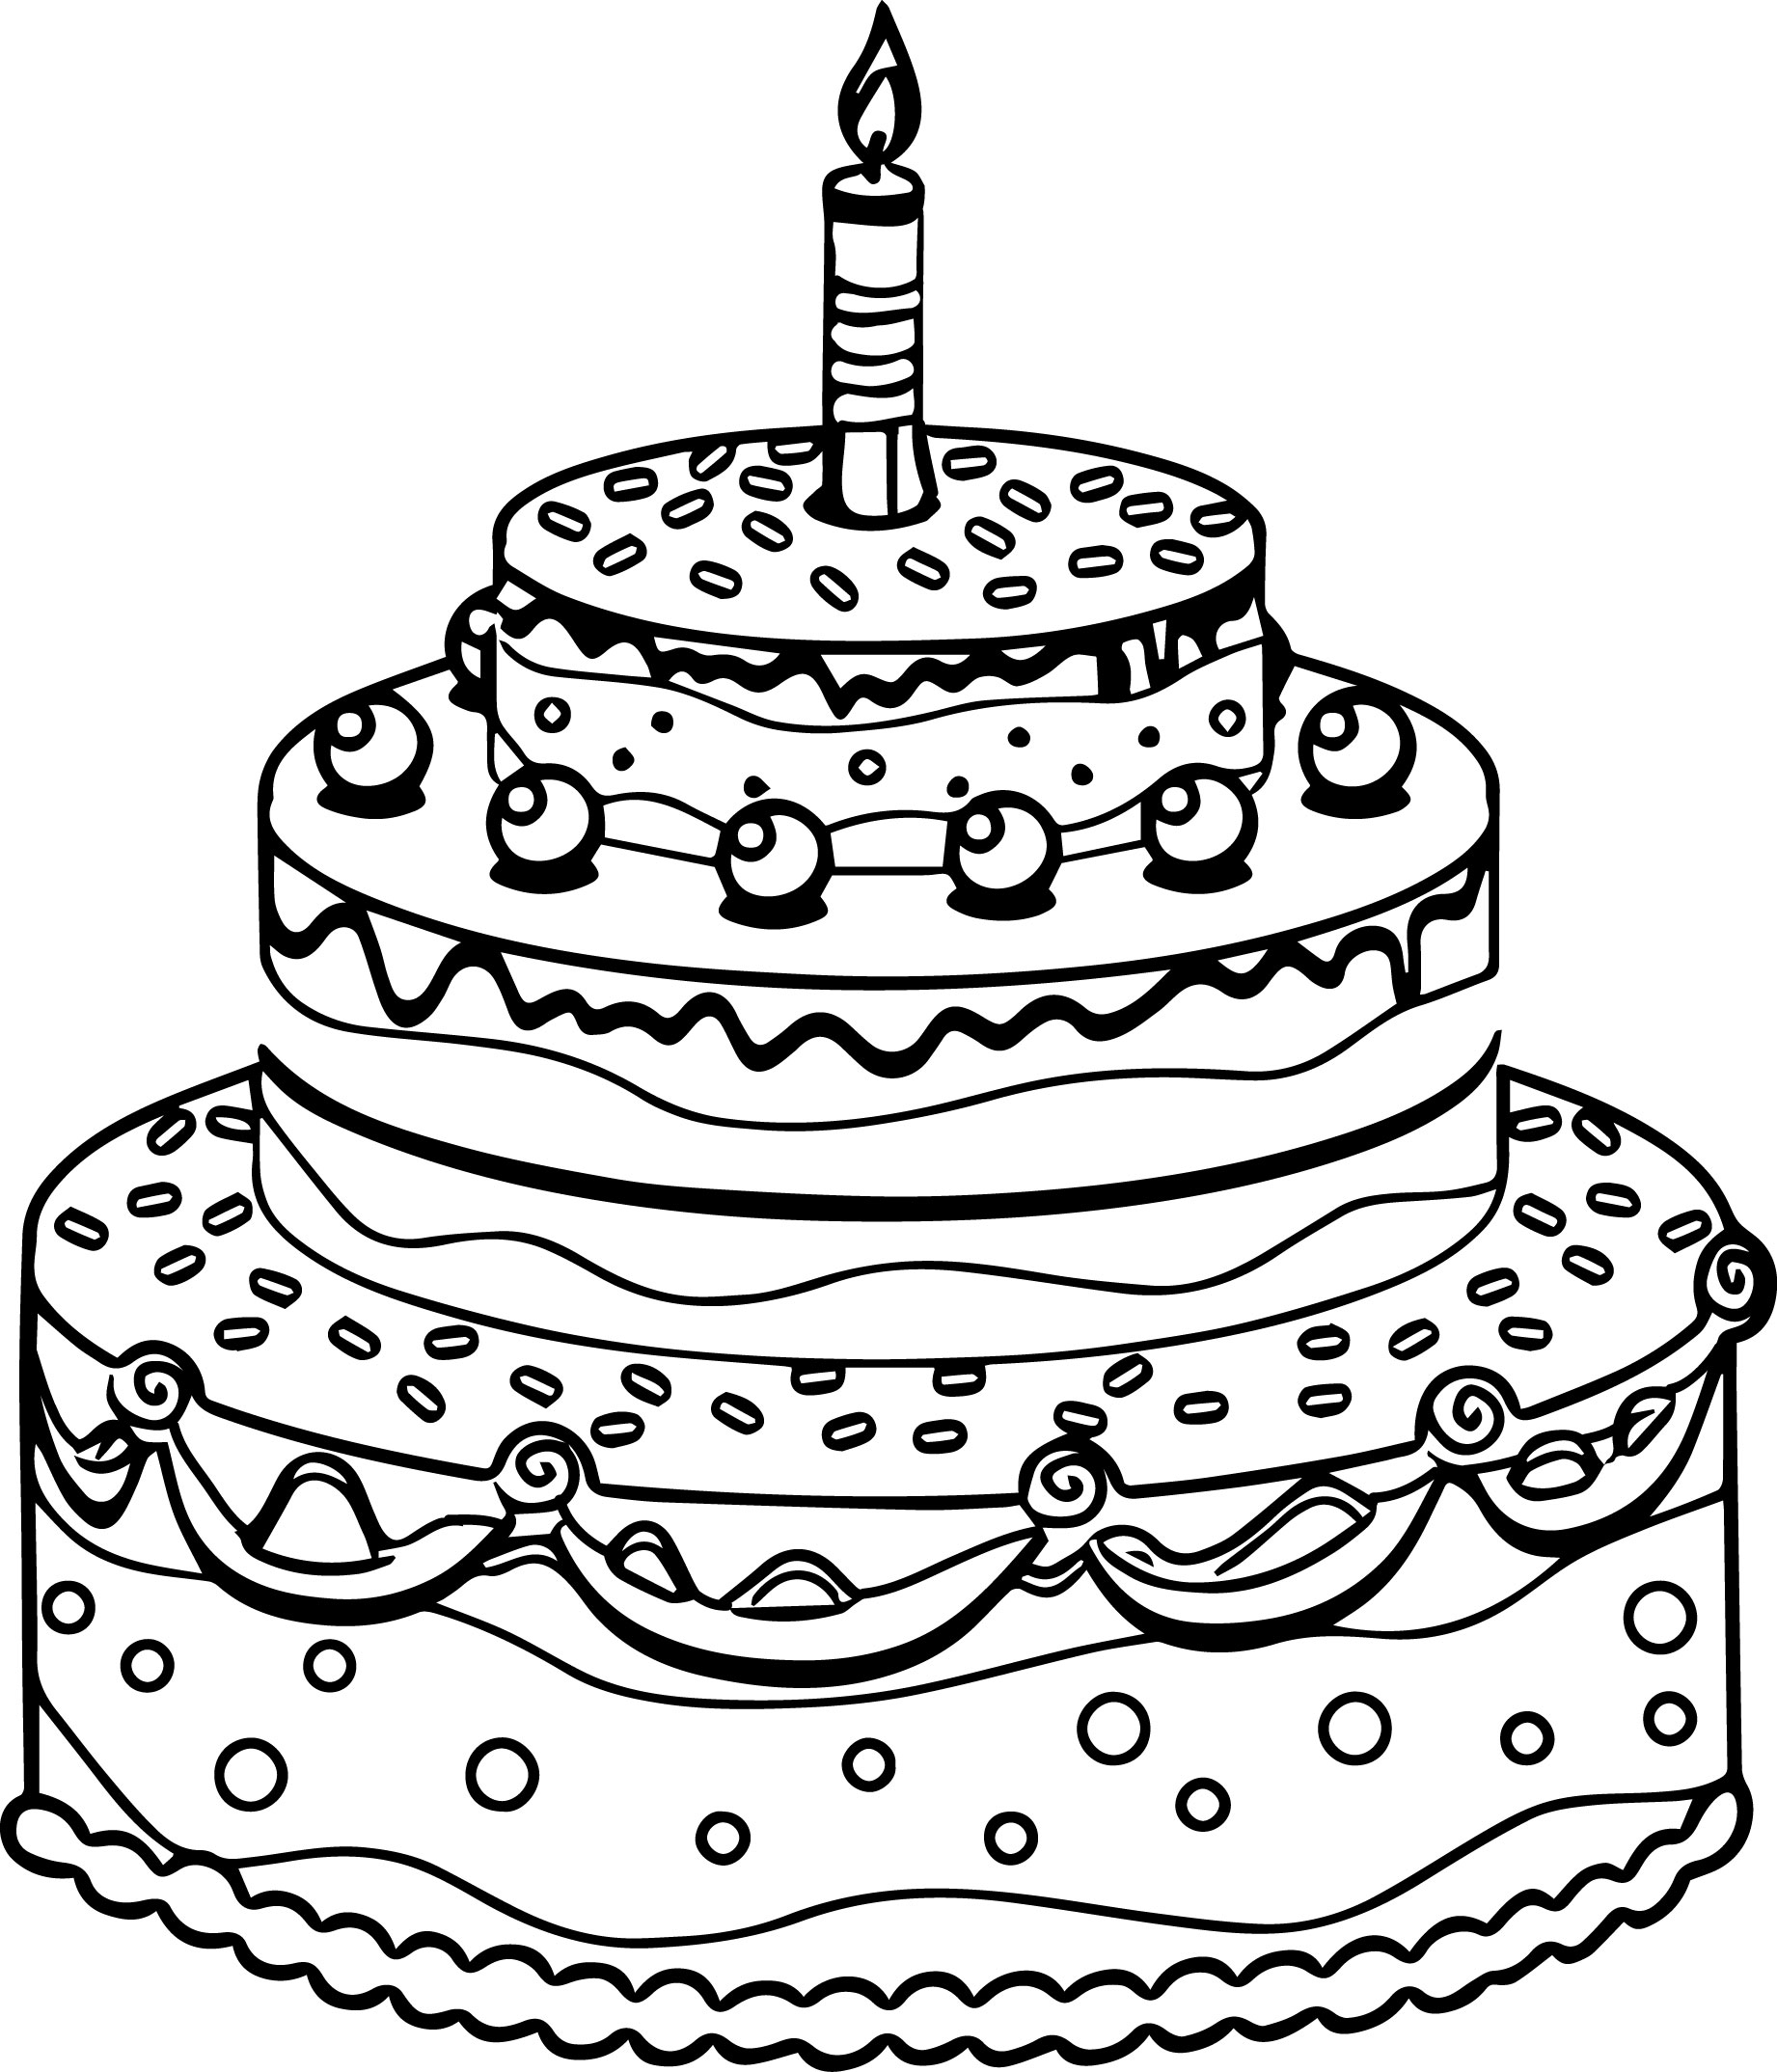 birthday cakes to colour in sheets ; birthday-cake-coloring-pages-fresh-page-64-about-remodel-free-book-with